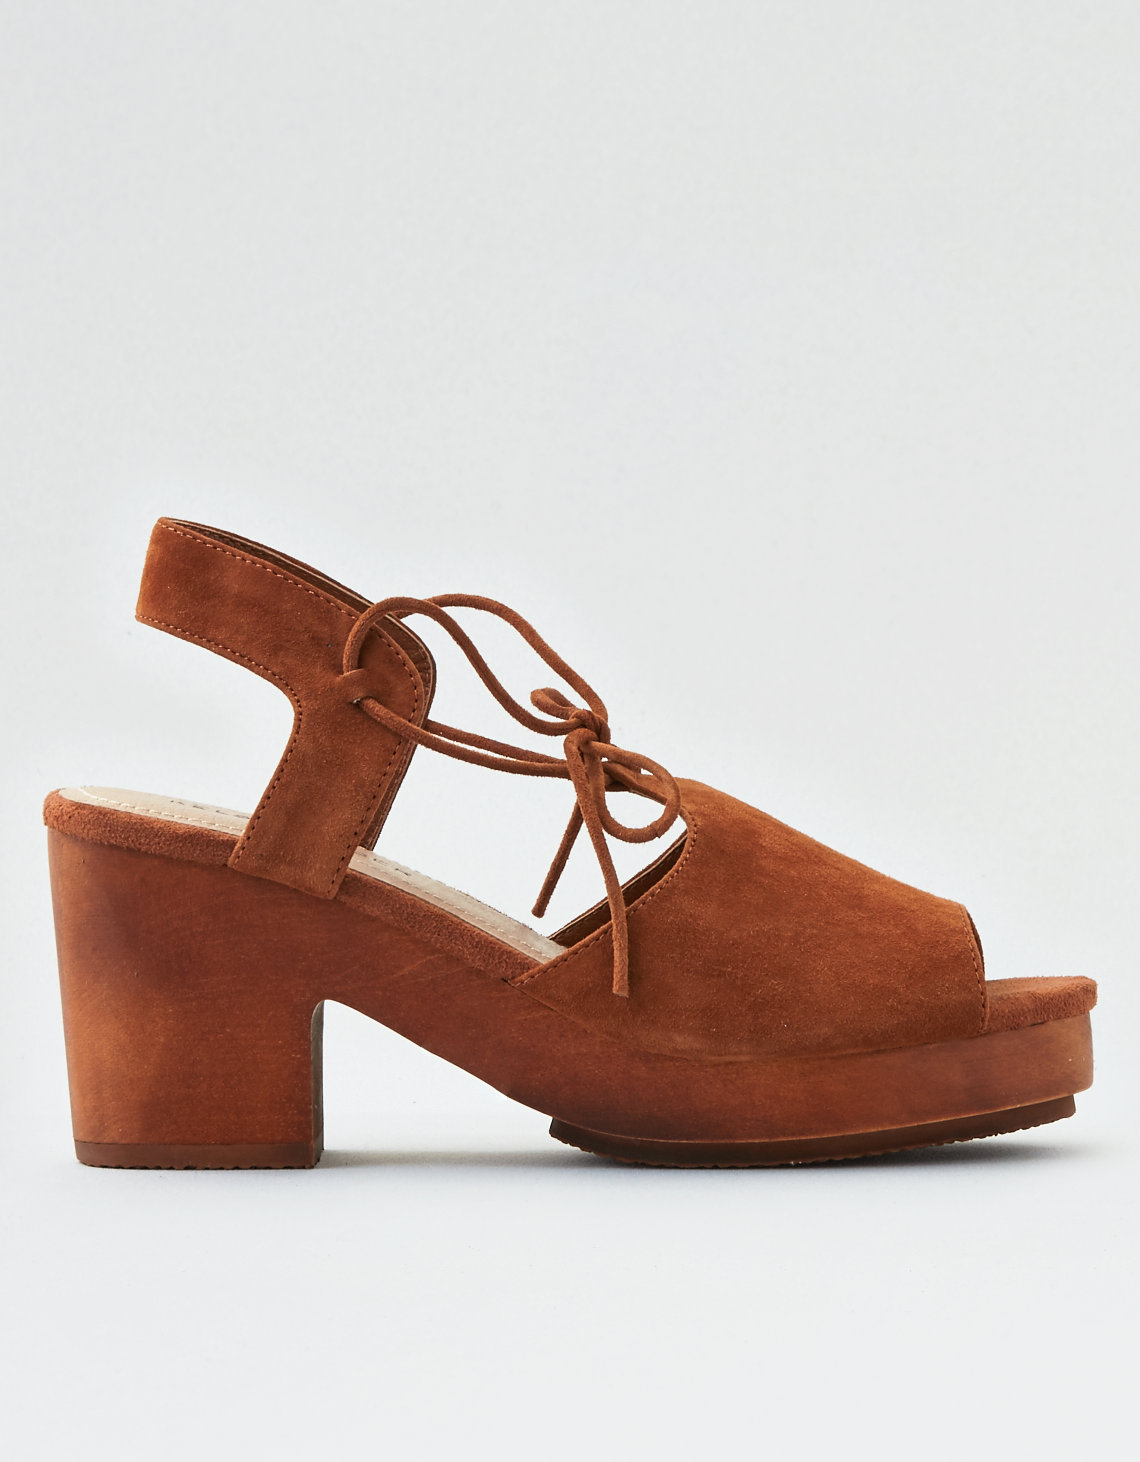 free shipping fake cheap browse Kelsi Dagger Brooklyn Miram Sandal browse online outlet with paypal order trQscIaluE